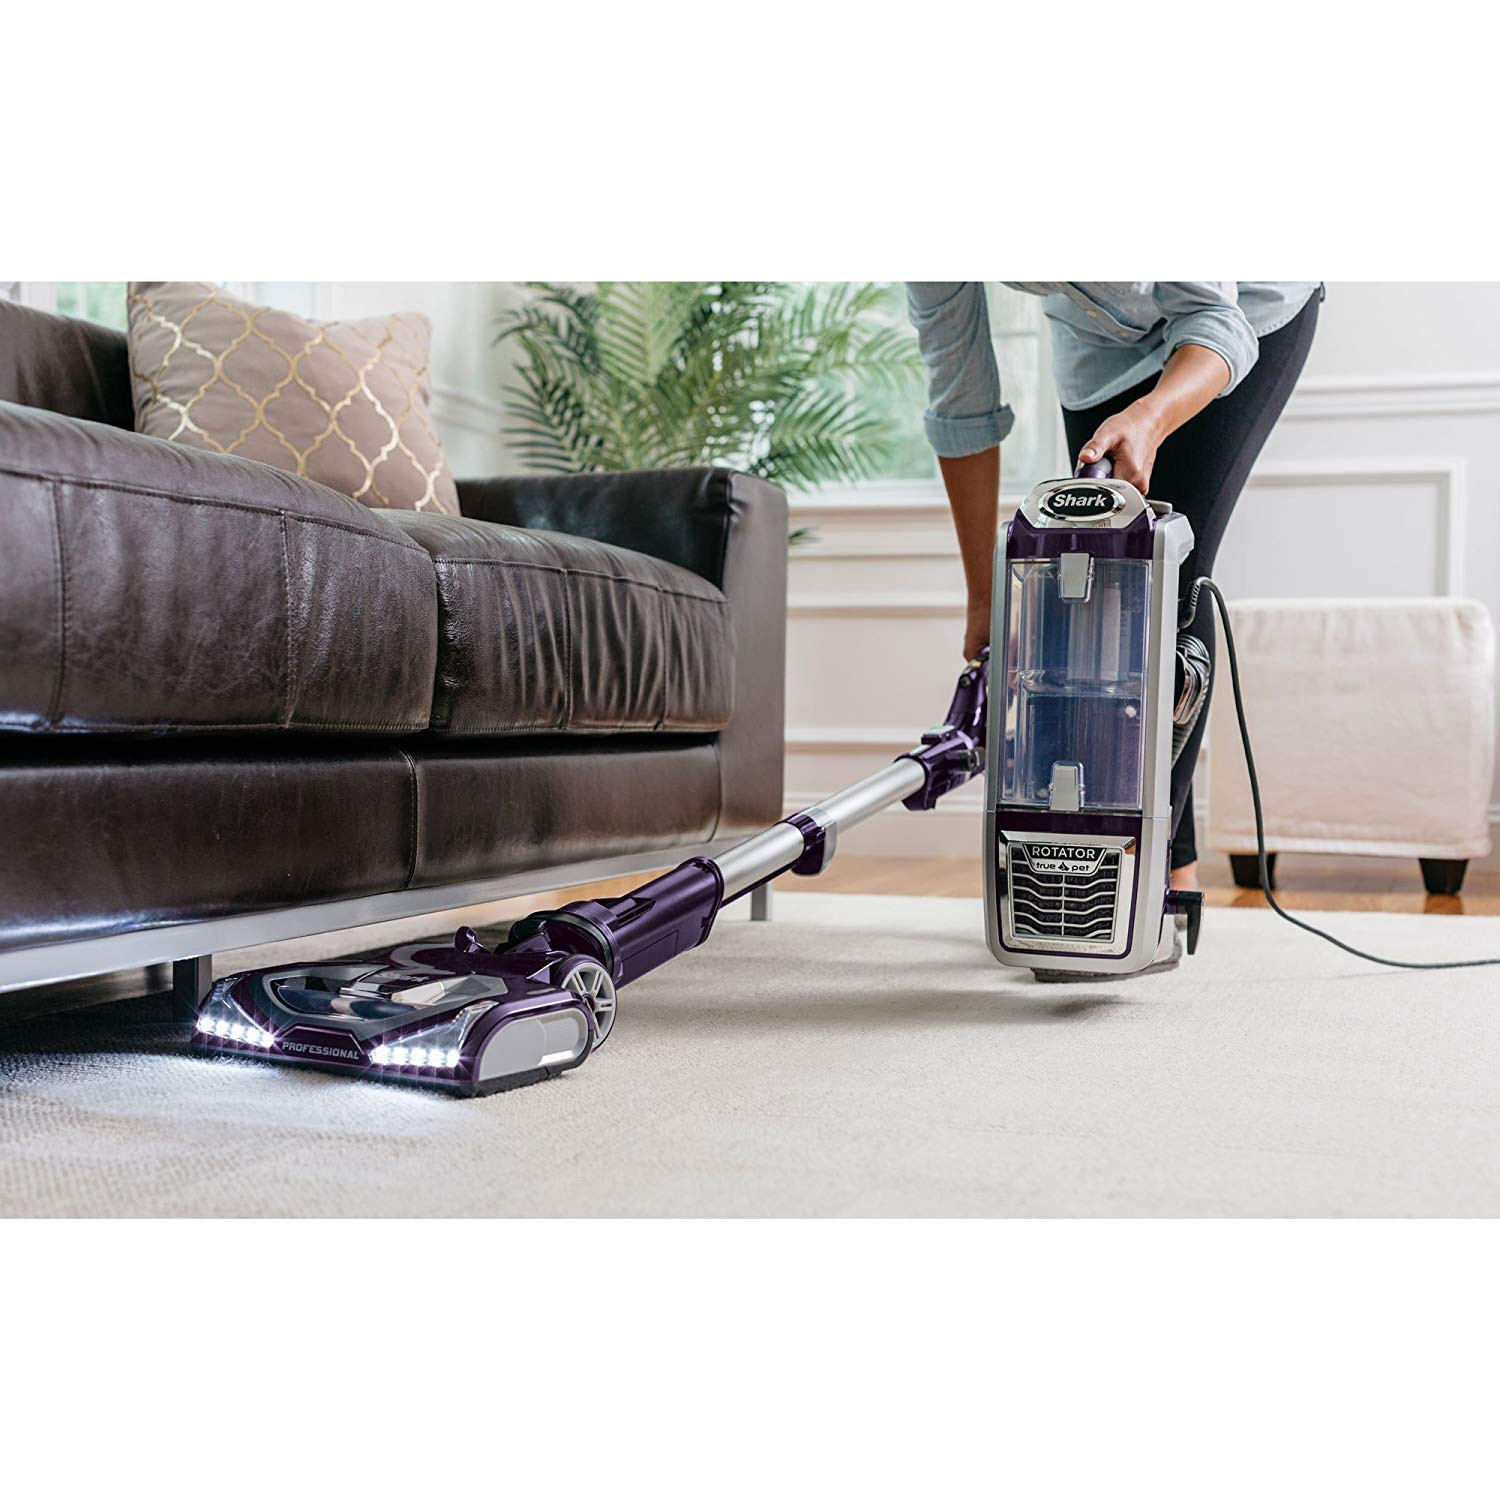 shark navigator professional hardwood floor vacuum cleaners of amazon com shark rotator powered lift away vacuum purple regarding amazon com shark rotator powered lift away vacuum purple refurbished